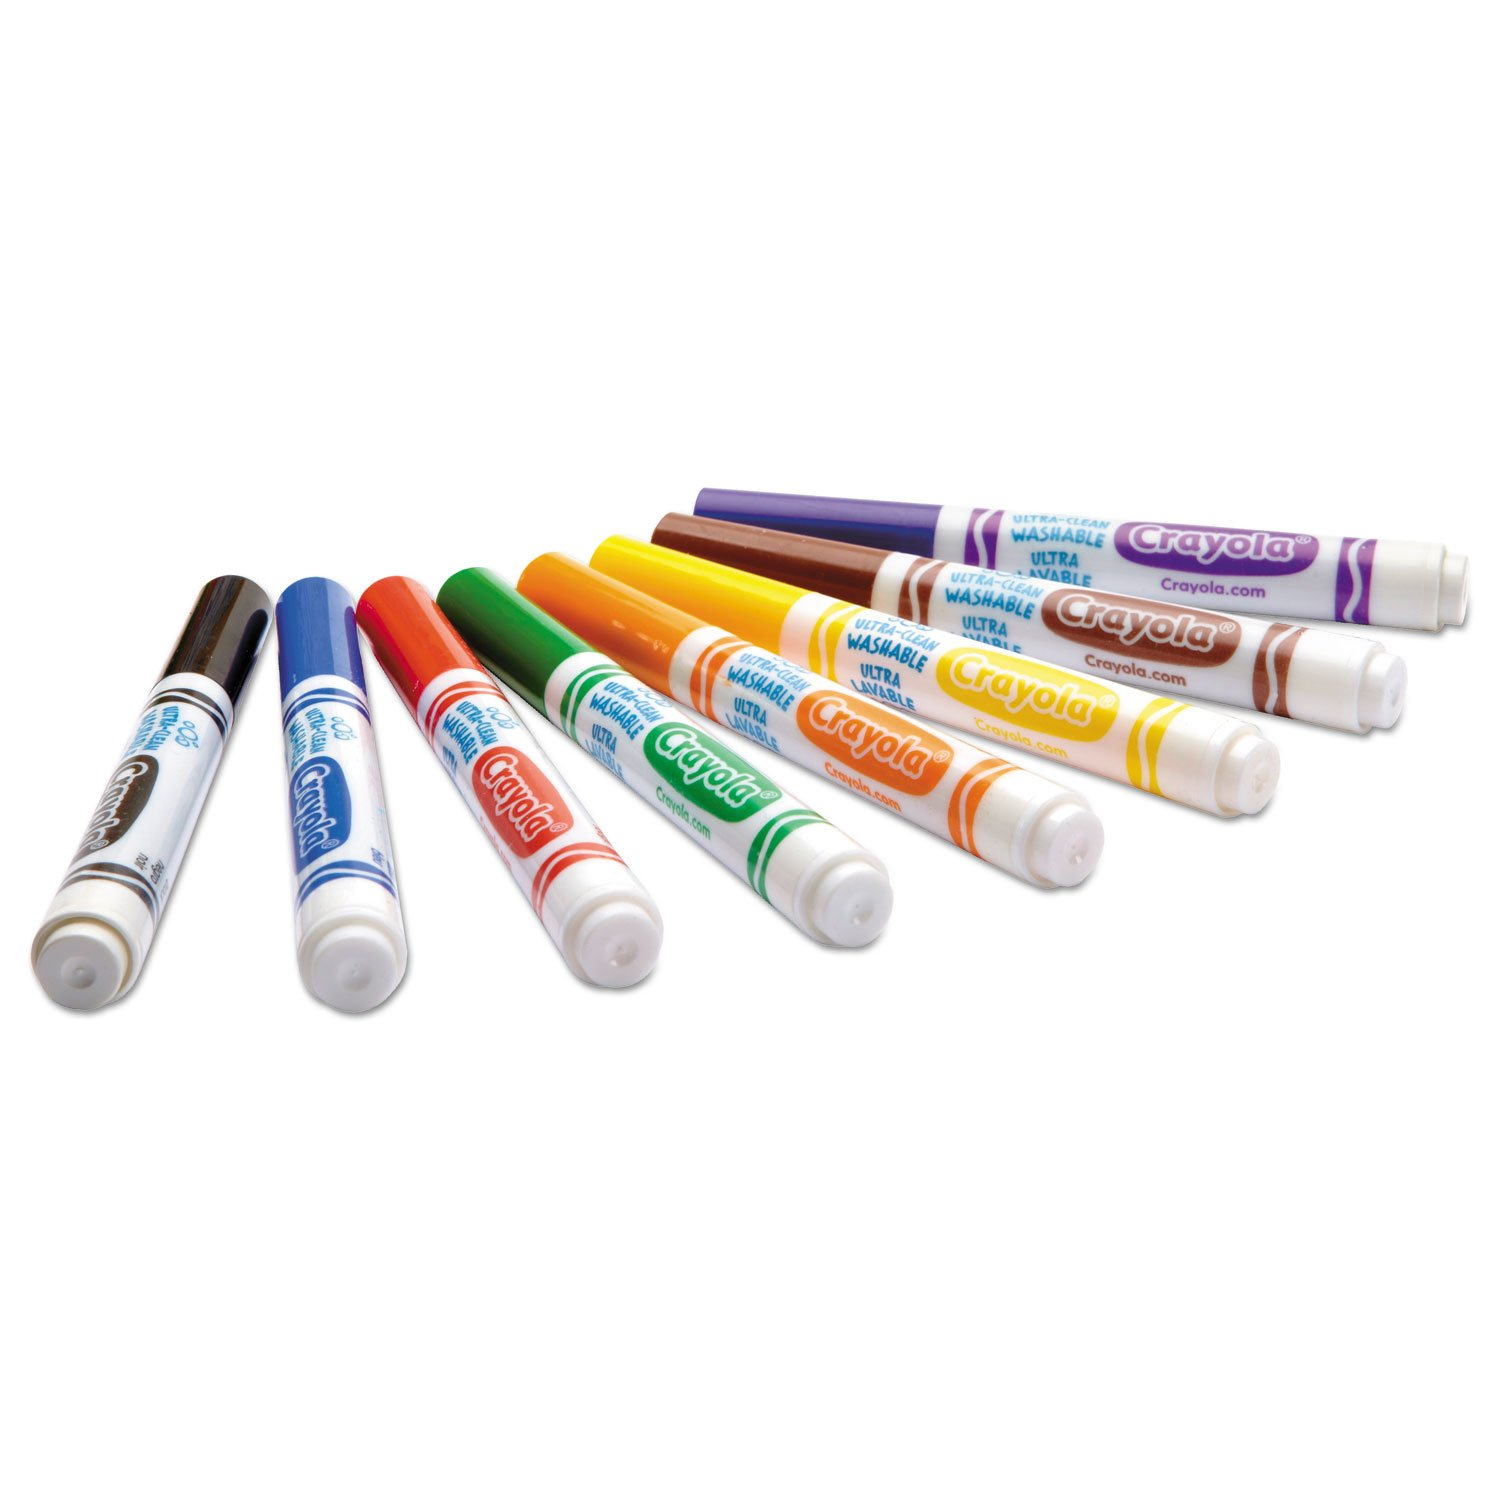 Classic Crayola/// 587808 Ashable Markers